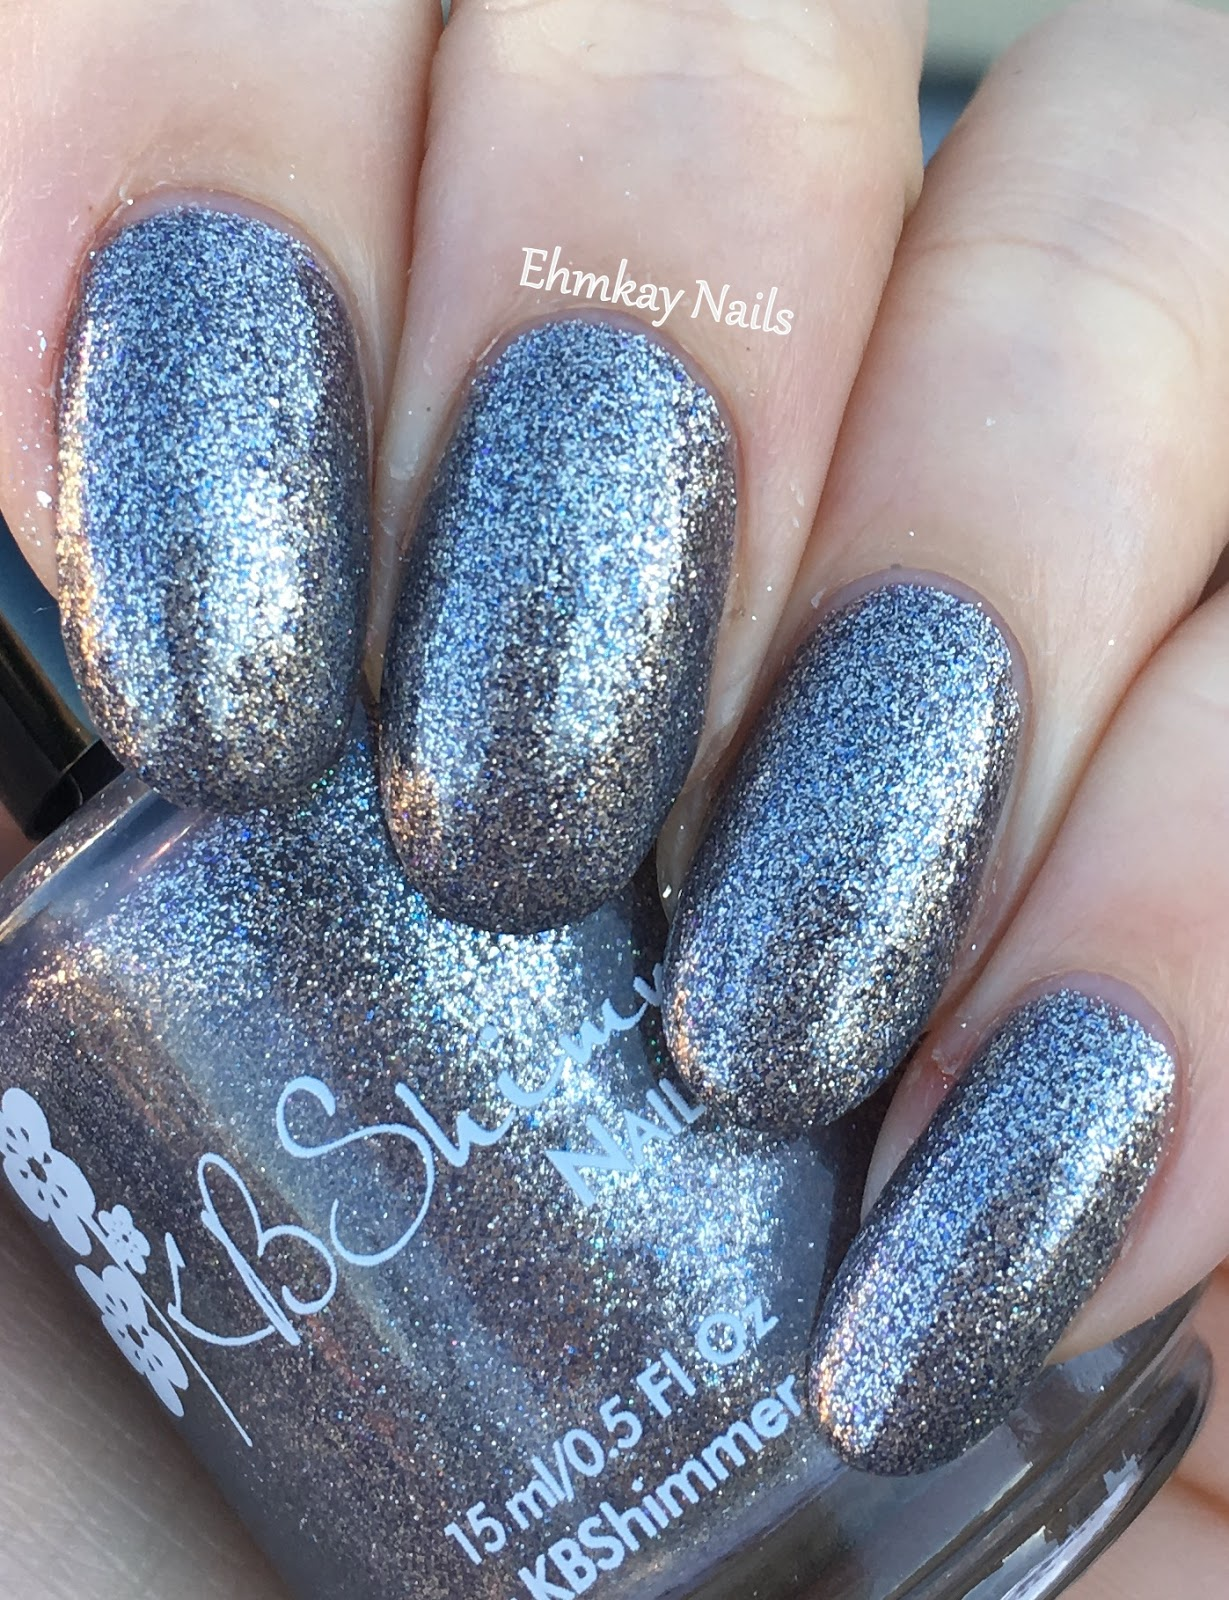 Ehmkay Nails: KBShimmer Office Space Collection, Partial